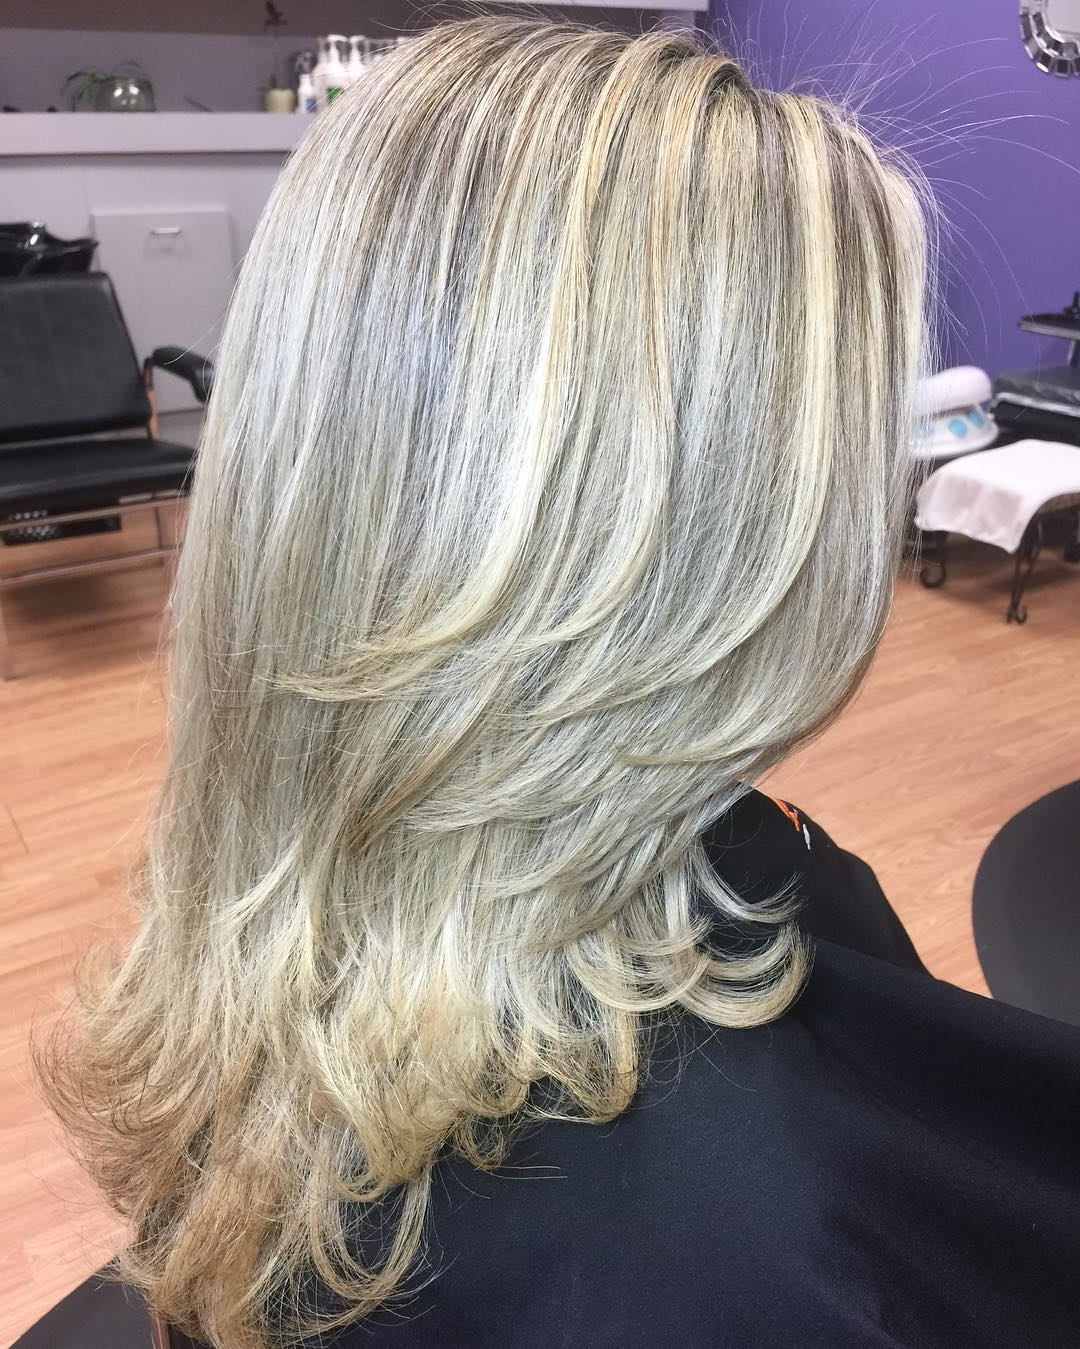 80 Glamorized Layered Hairstyles And Haircuts For Women Throughout Preferred Shoulder Grazing Flared Blonde Shag Haircuts (View 13 of 20)